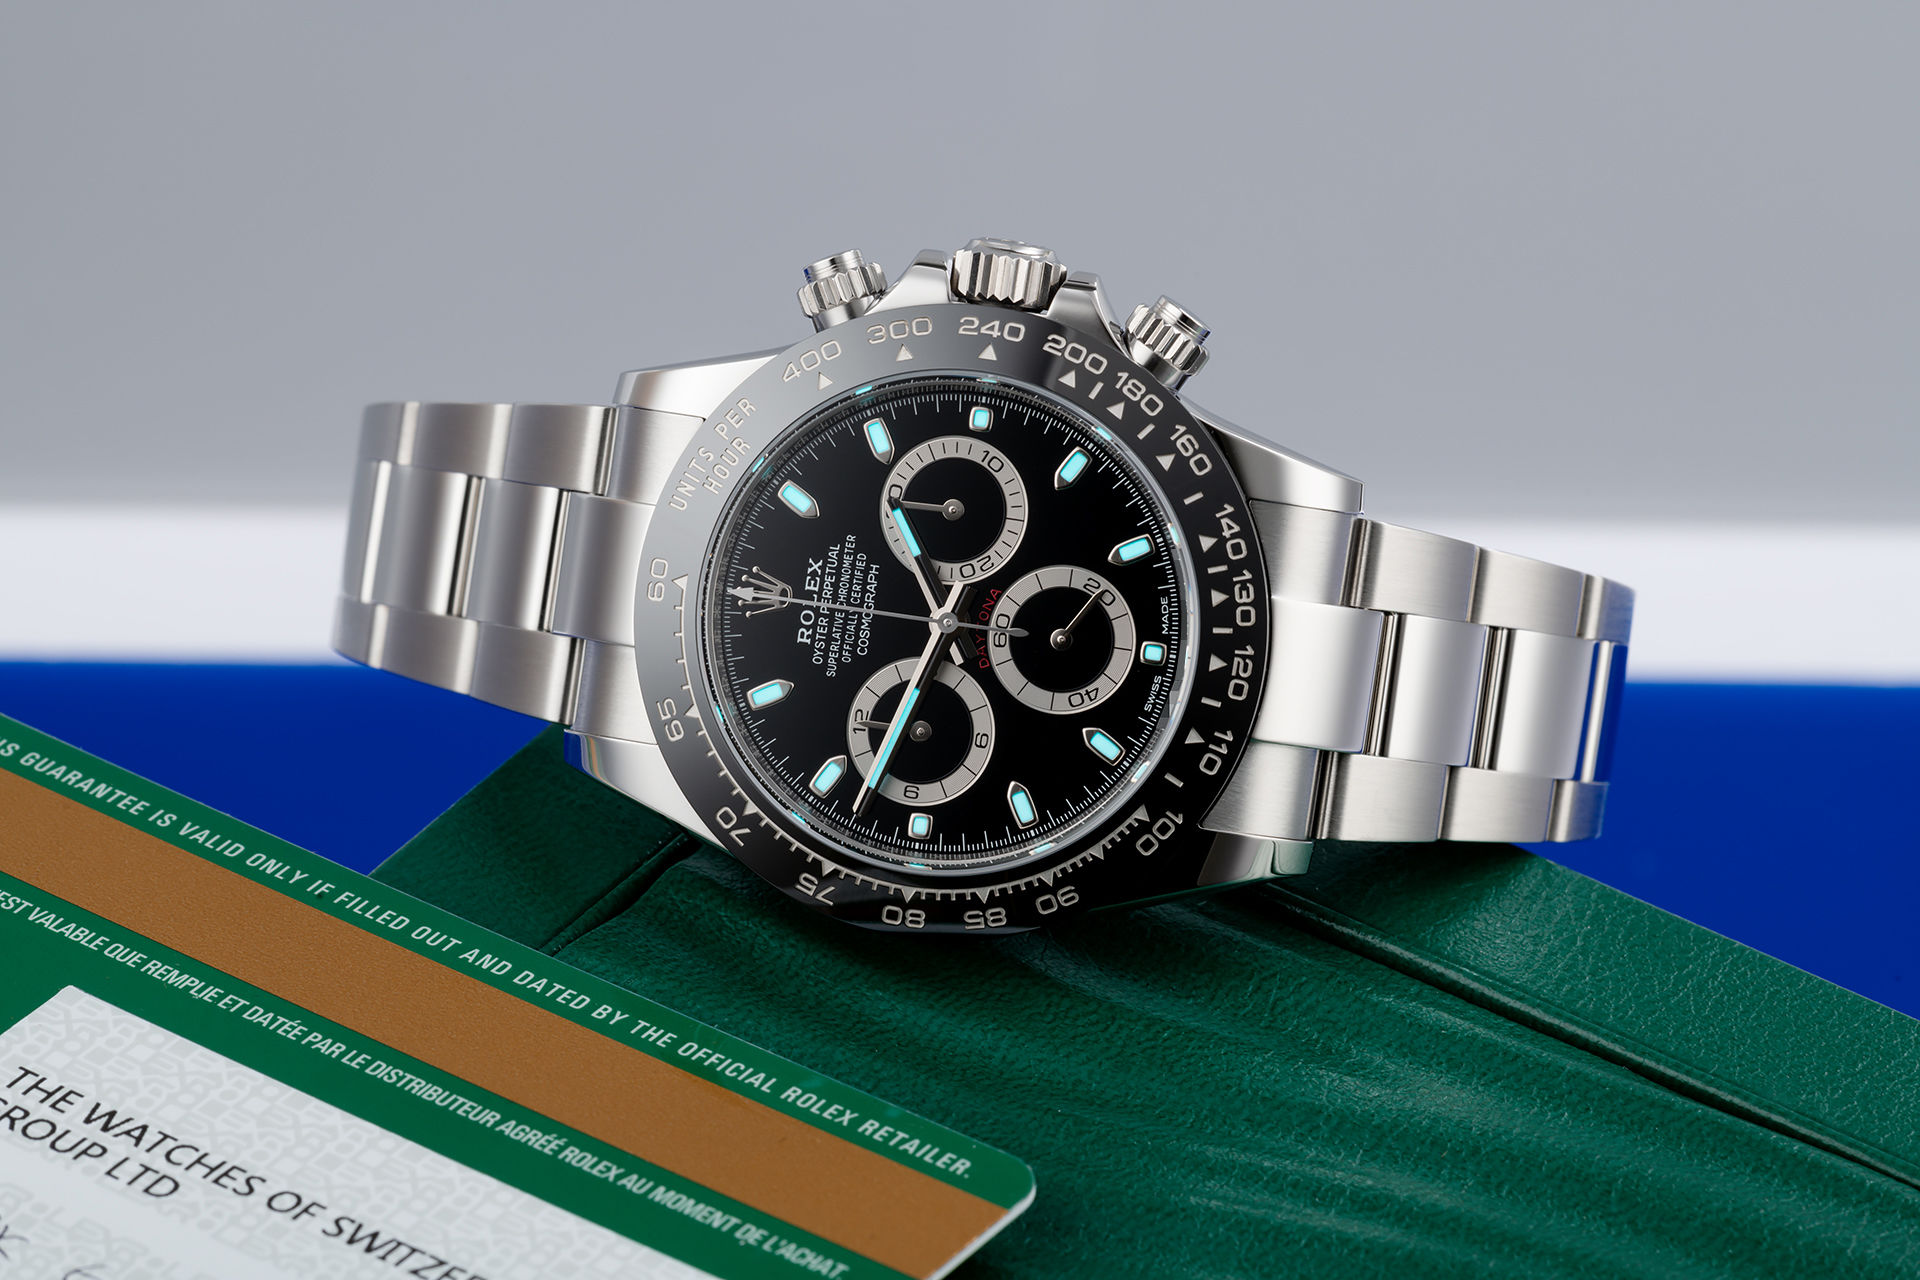 ref 116500LN | Brand New 'Warranty to 2025' | Rolex Cosmograph Daytona